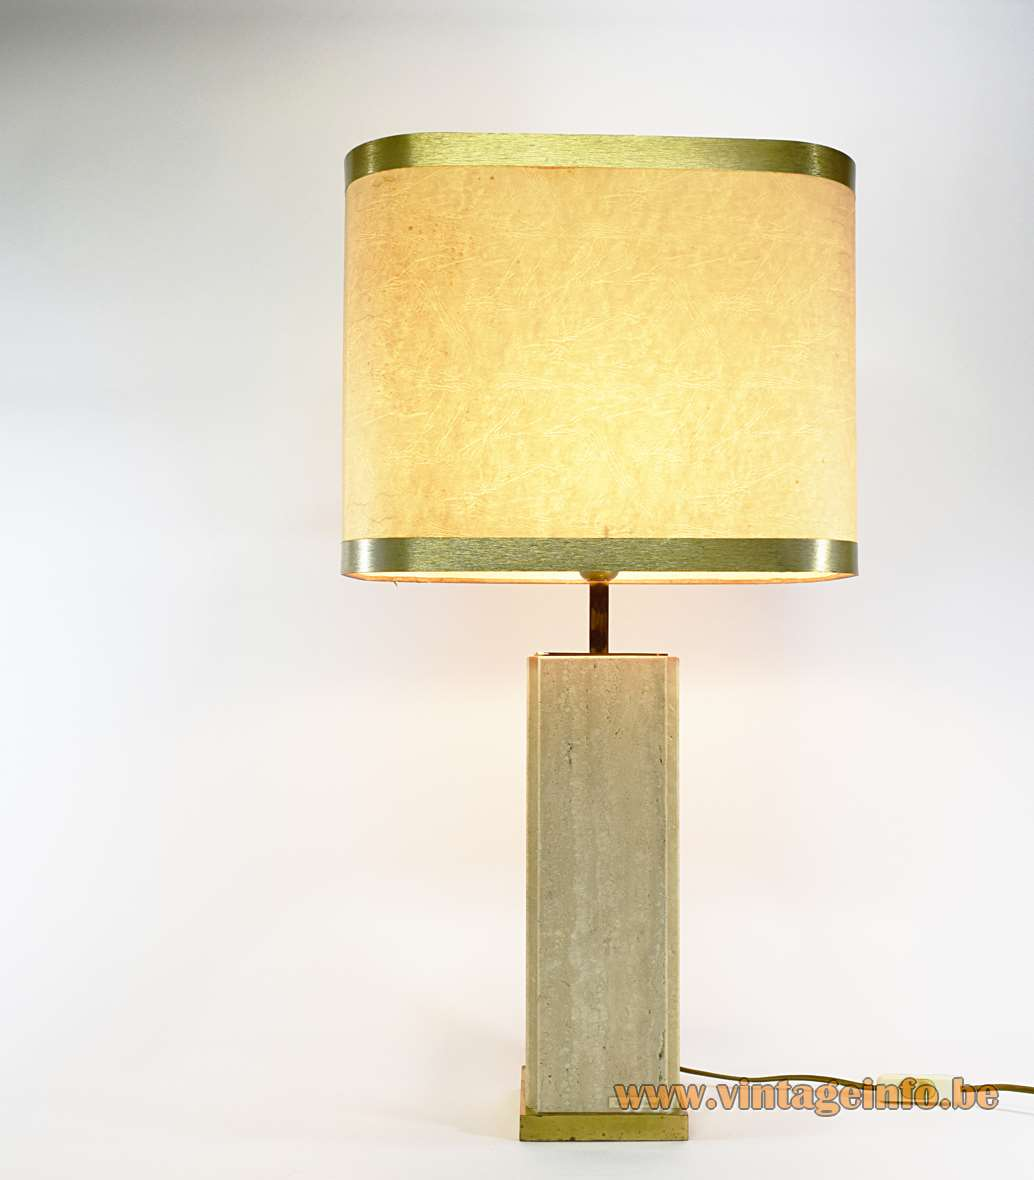 Travertine Table Lamp Limestone Camille Breesch Belgium brass paper lampshade rims 1960s 1970s MCM